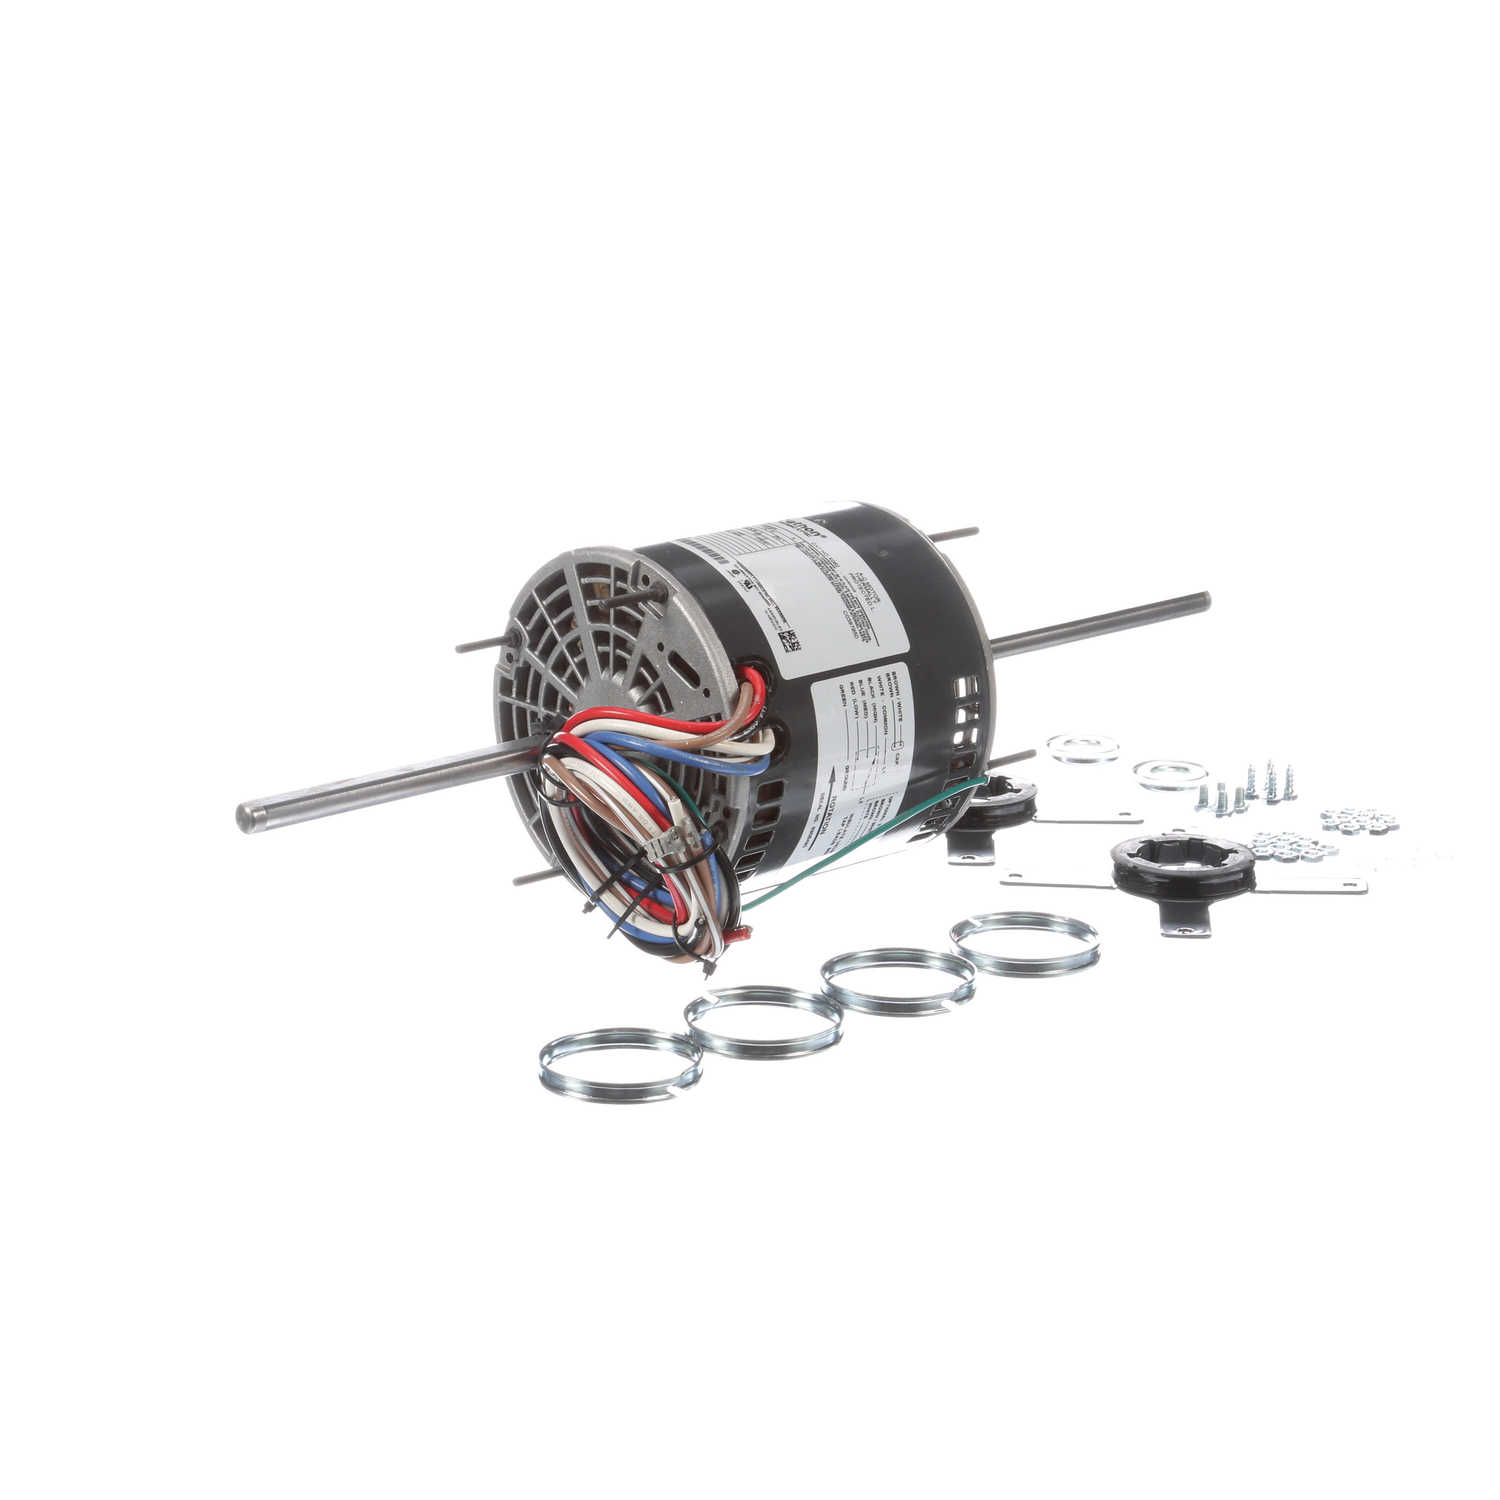 0.50 HP 3 speed Fan and Blower HVAC/R Motor, 1 phase, 1200